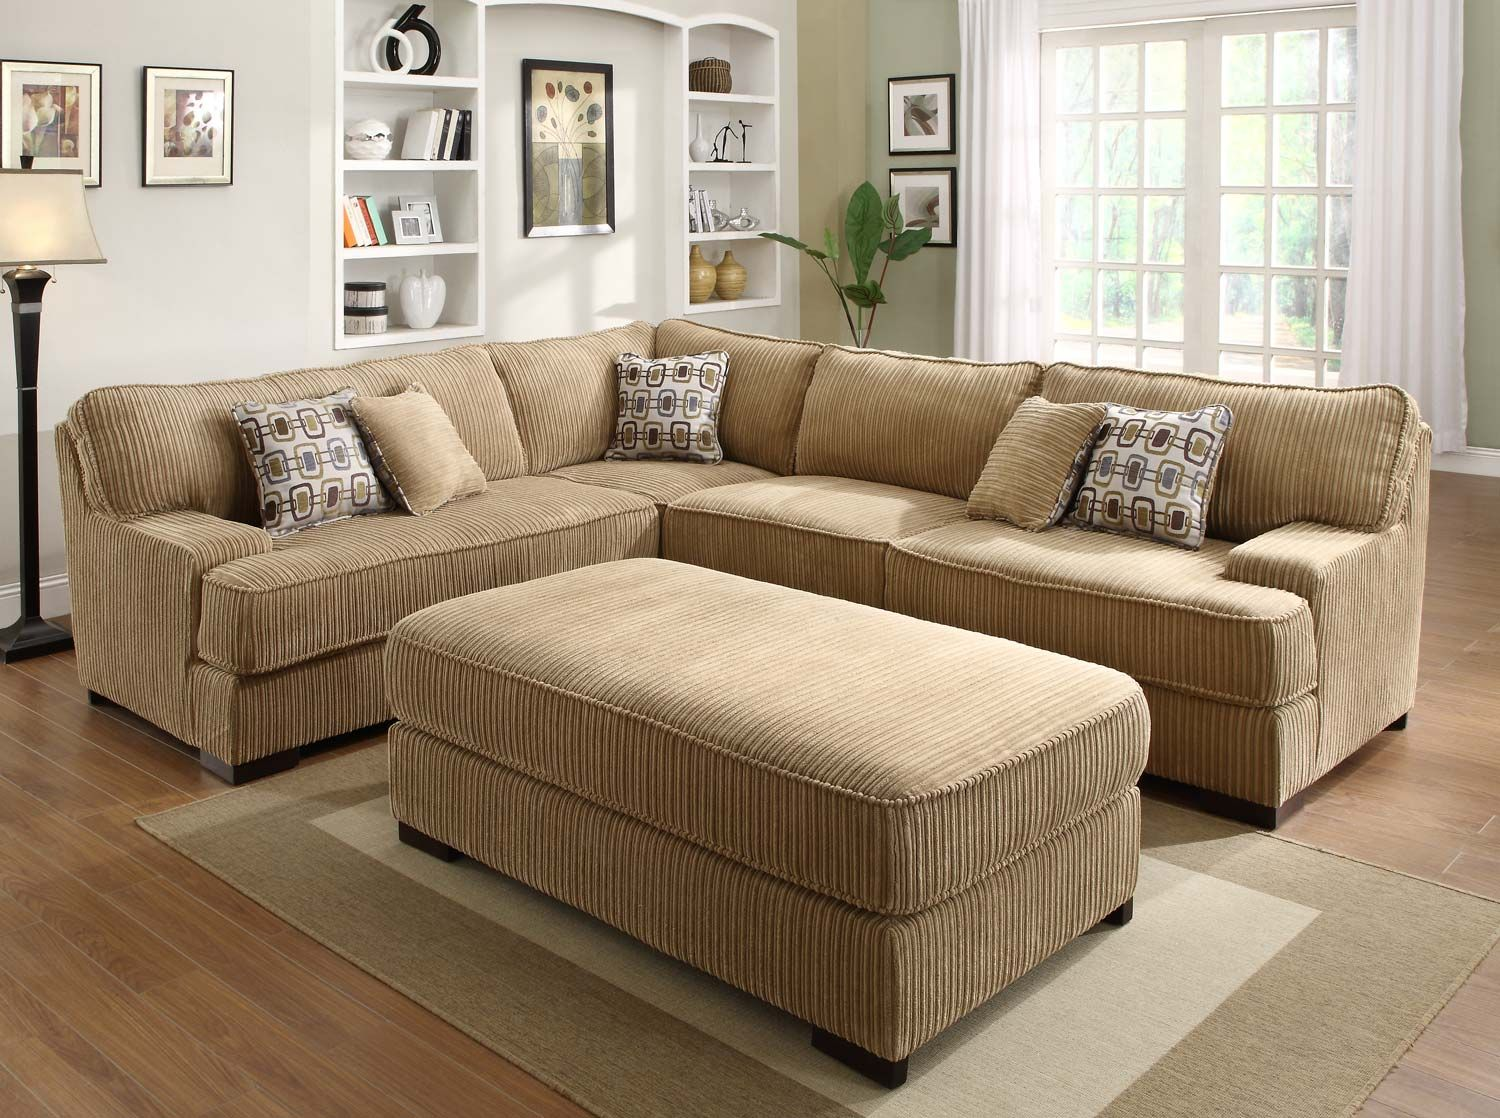 Best Homelegance Minnis Sectional Sofa Set Brown Cheap 640 x 480